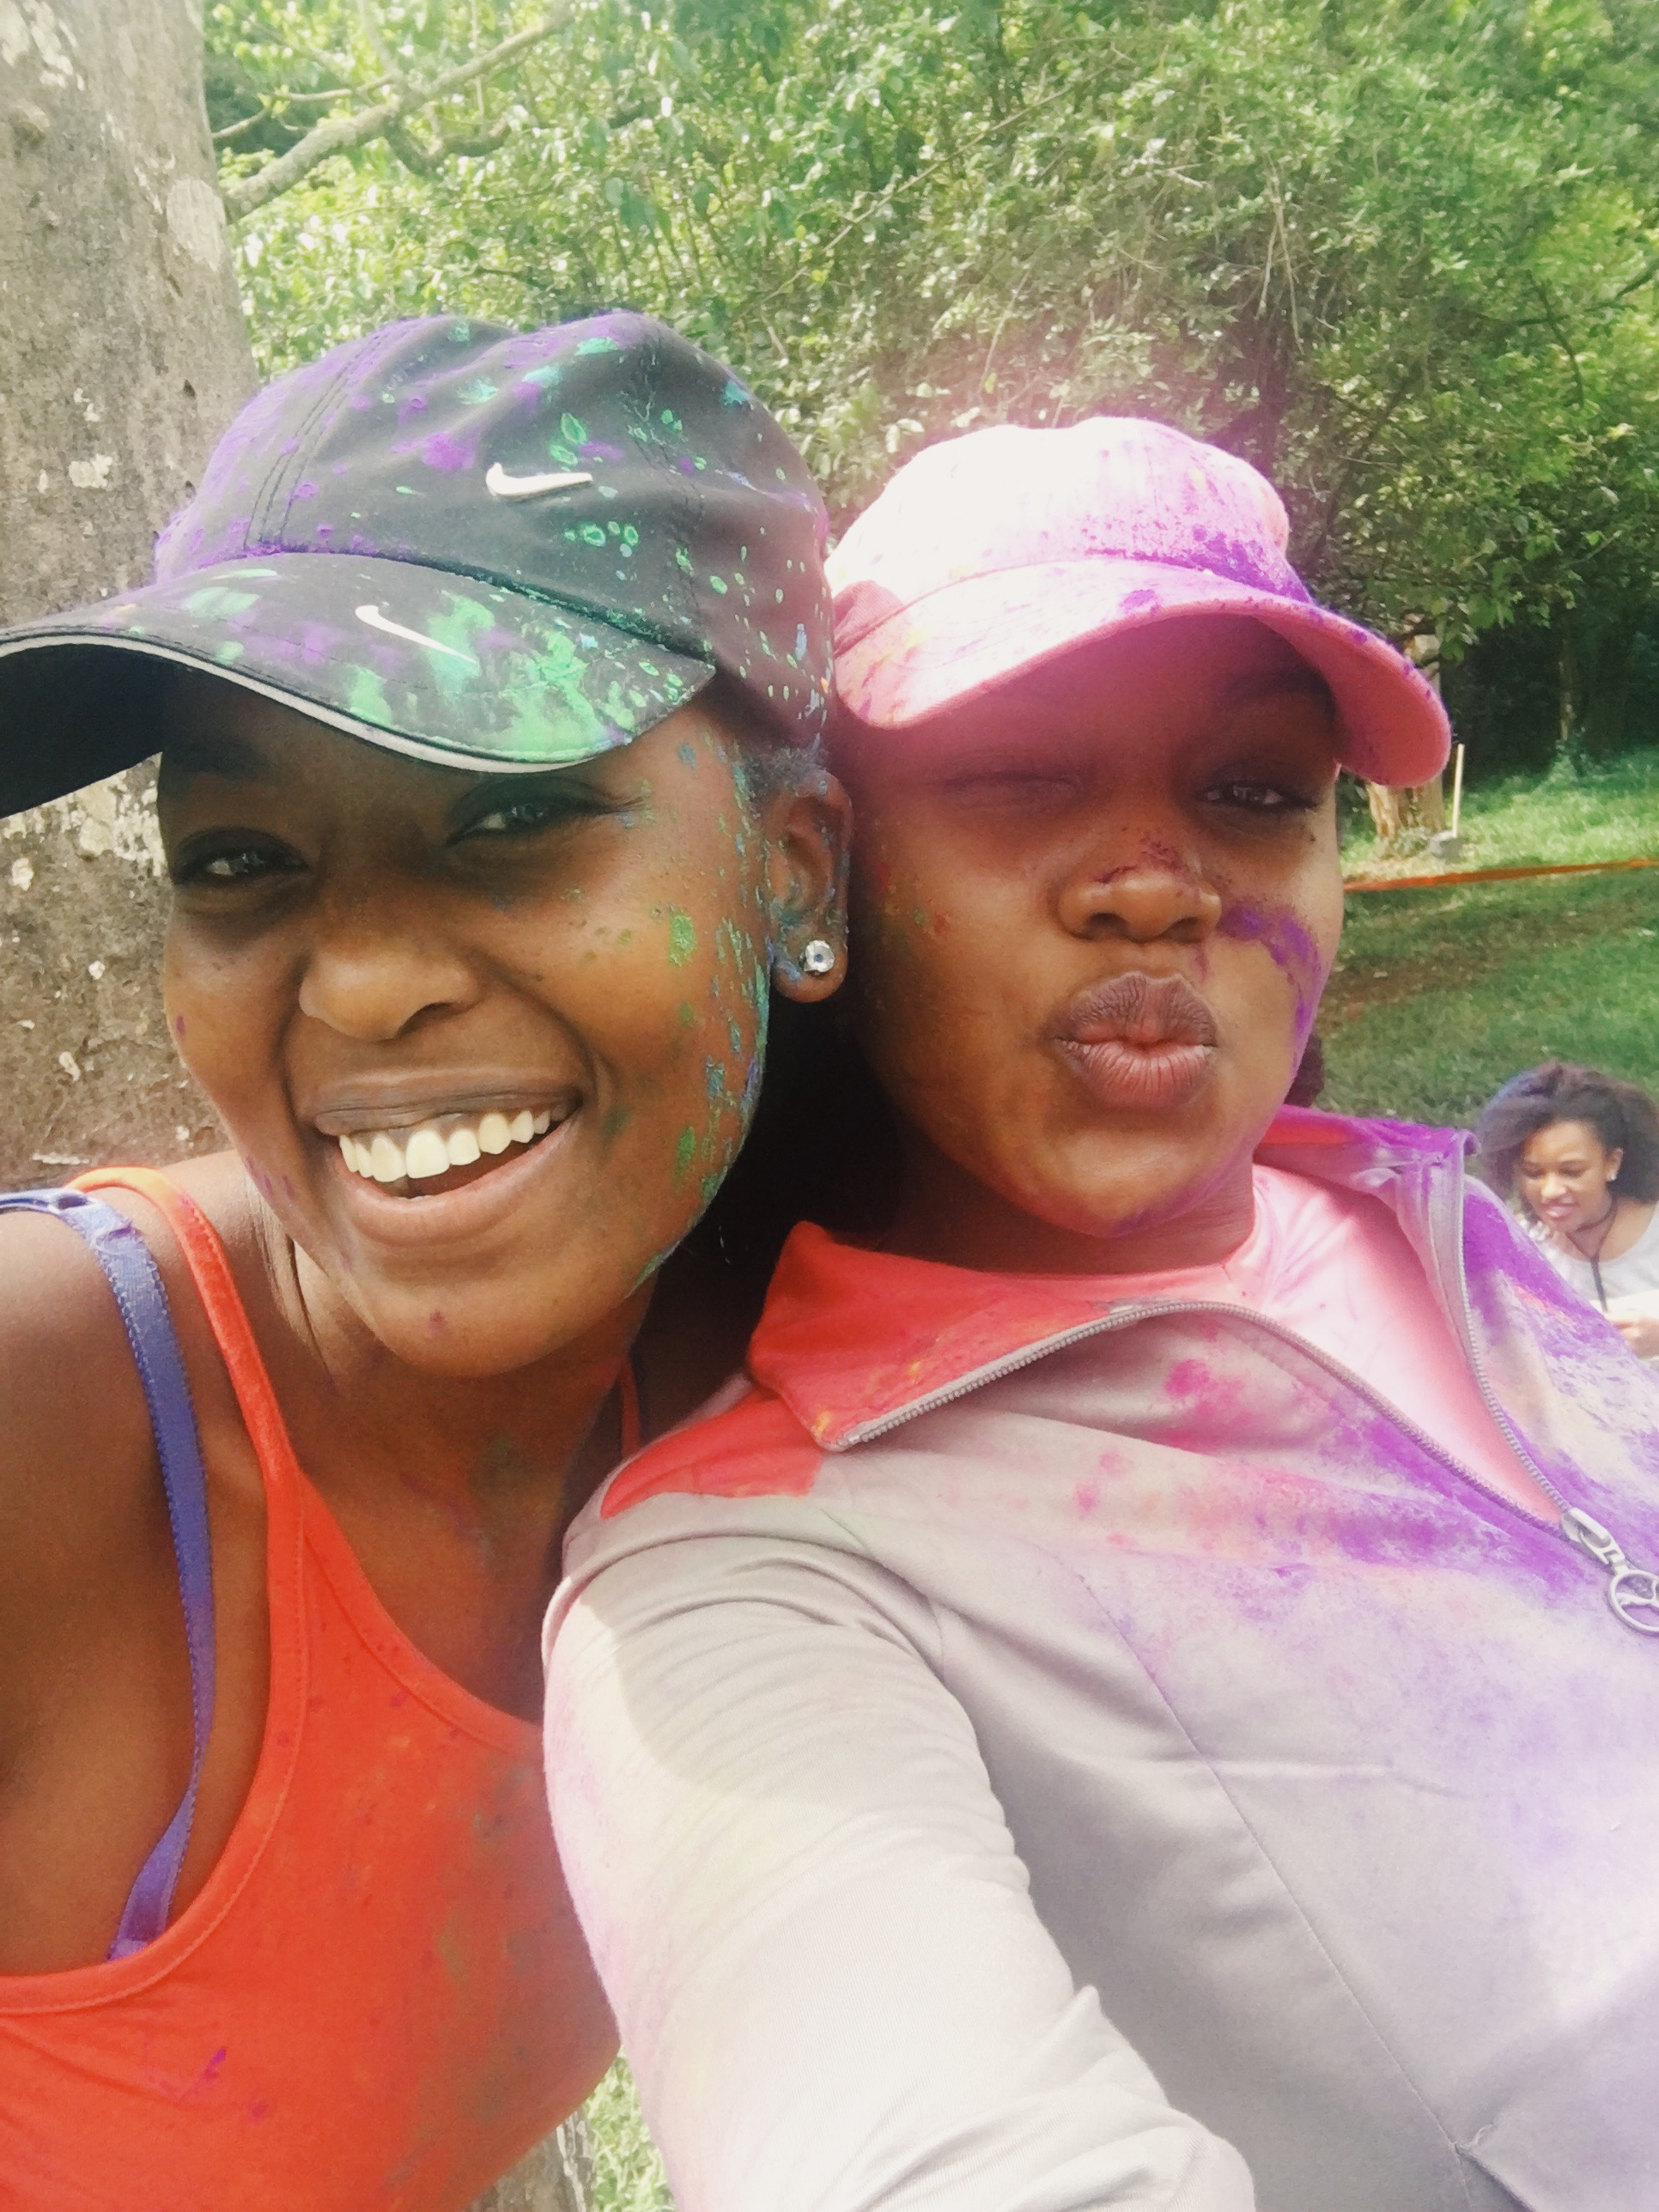 With Wambui during Paint The Run Kenya! Girrrrllll!! This was too much fun!